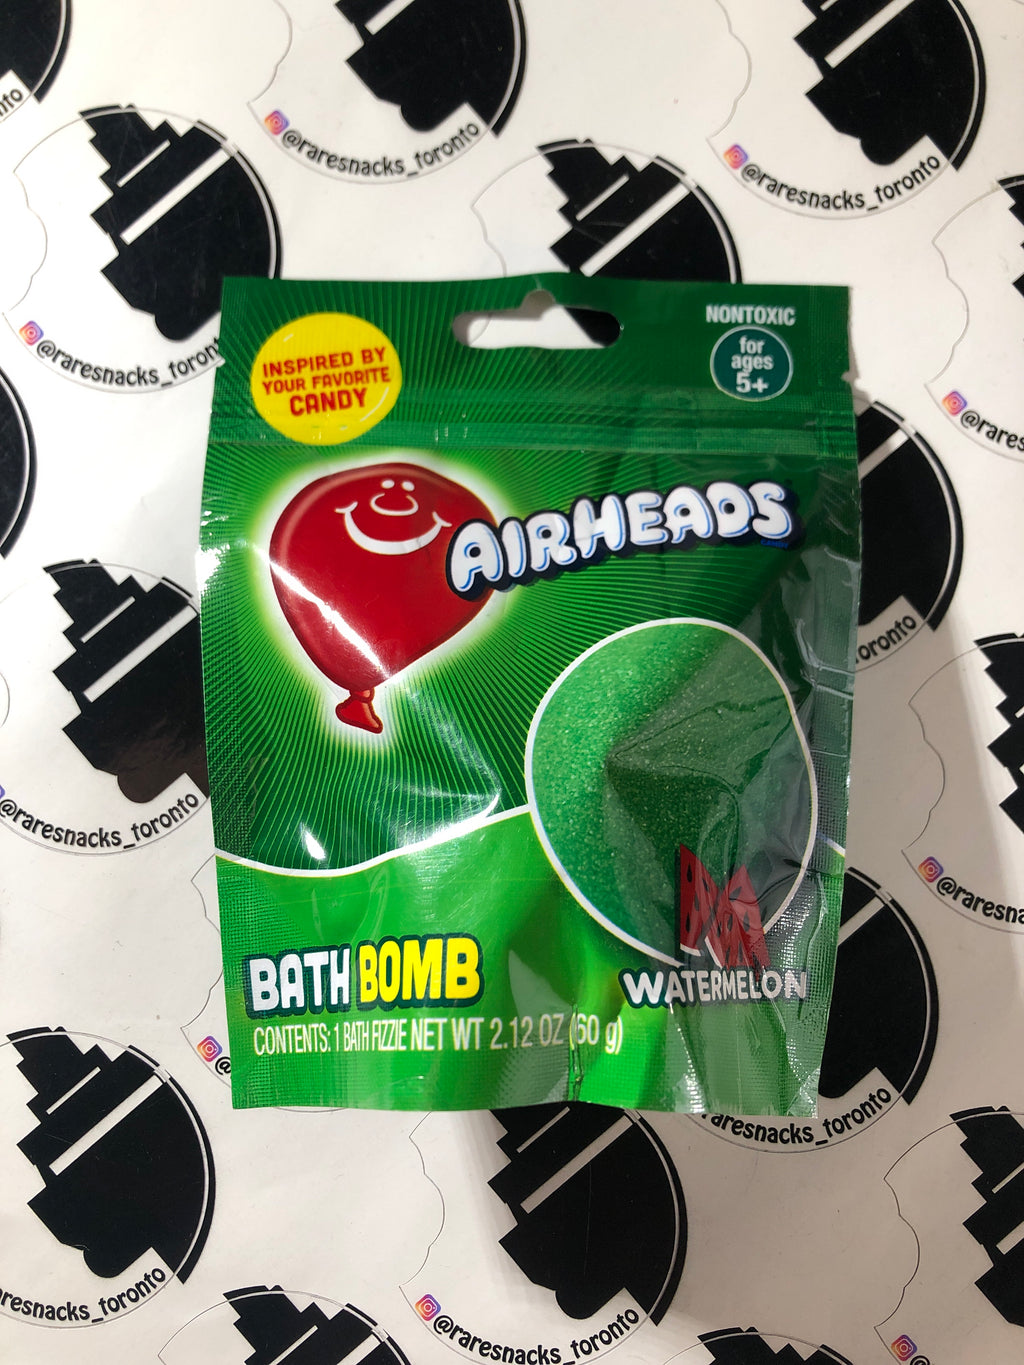 Airheads Bath Bomb Watermelon